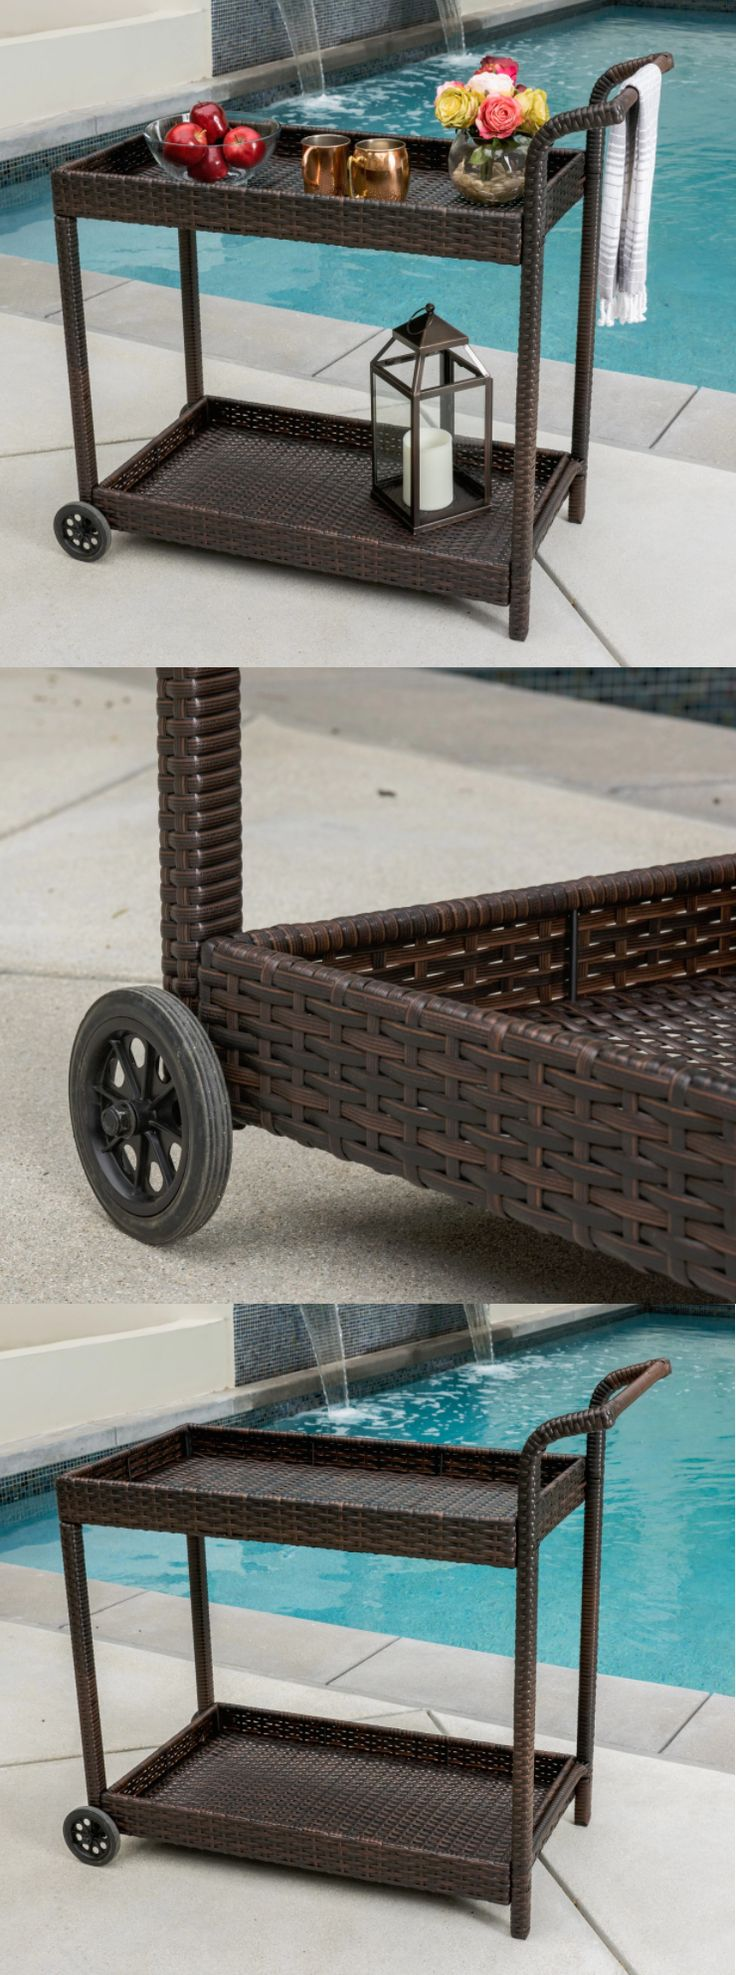 Bar Carts and Serving Carts 183320: Mini Bar Cart Outdoor Rolling Modern Portable Brown Wicker Patio Pool Furniture -> BUY IT NOW ONLY: $103.99 on eBay!